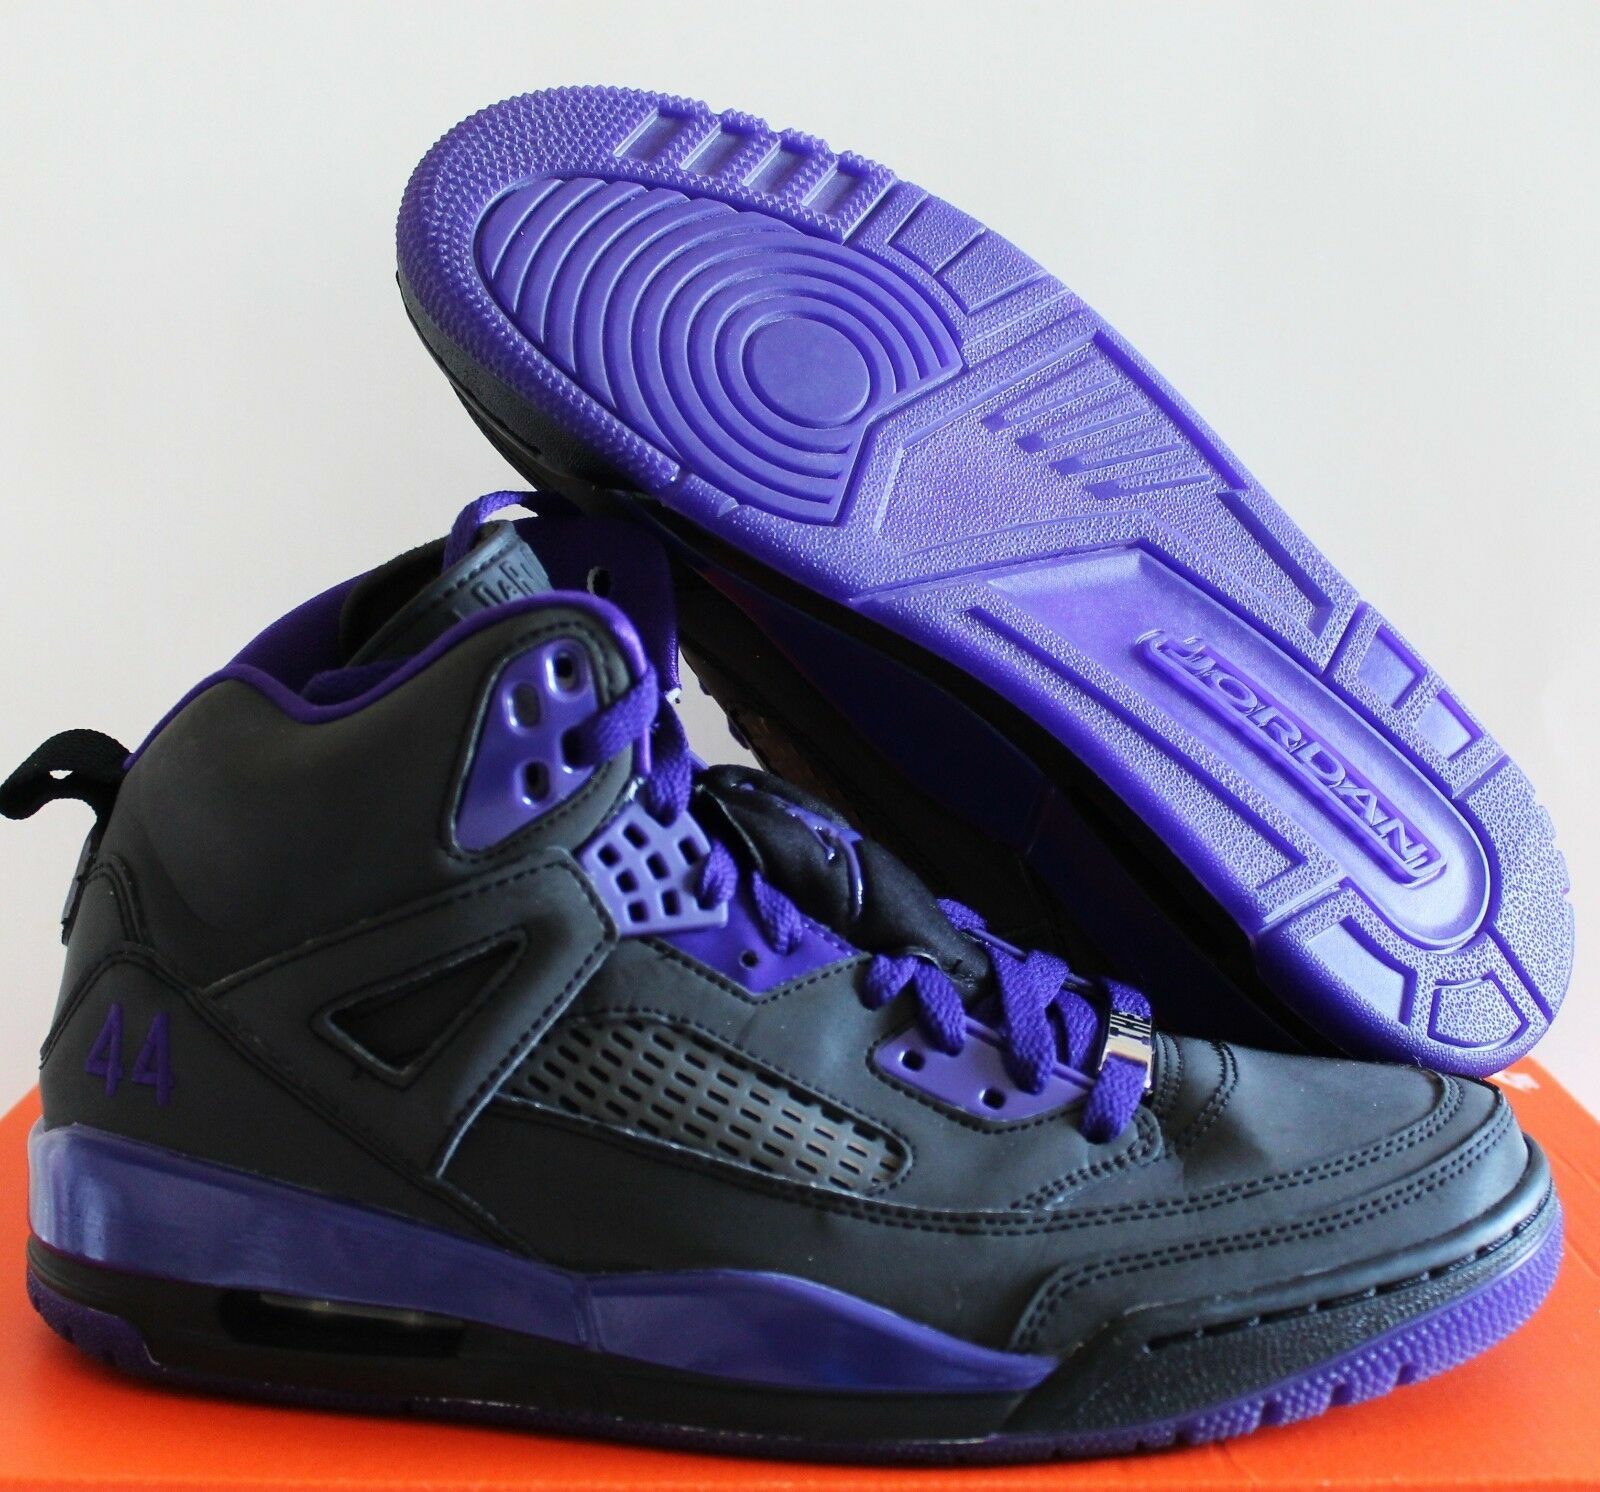 Wmns nike air jordan spizike id nero-purple sz 11 [605242-994]